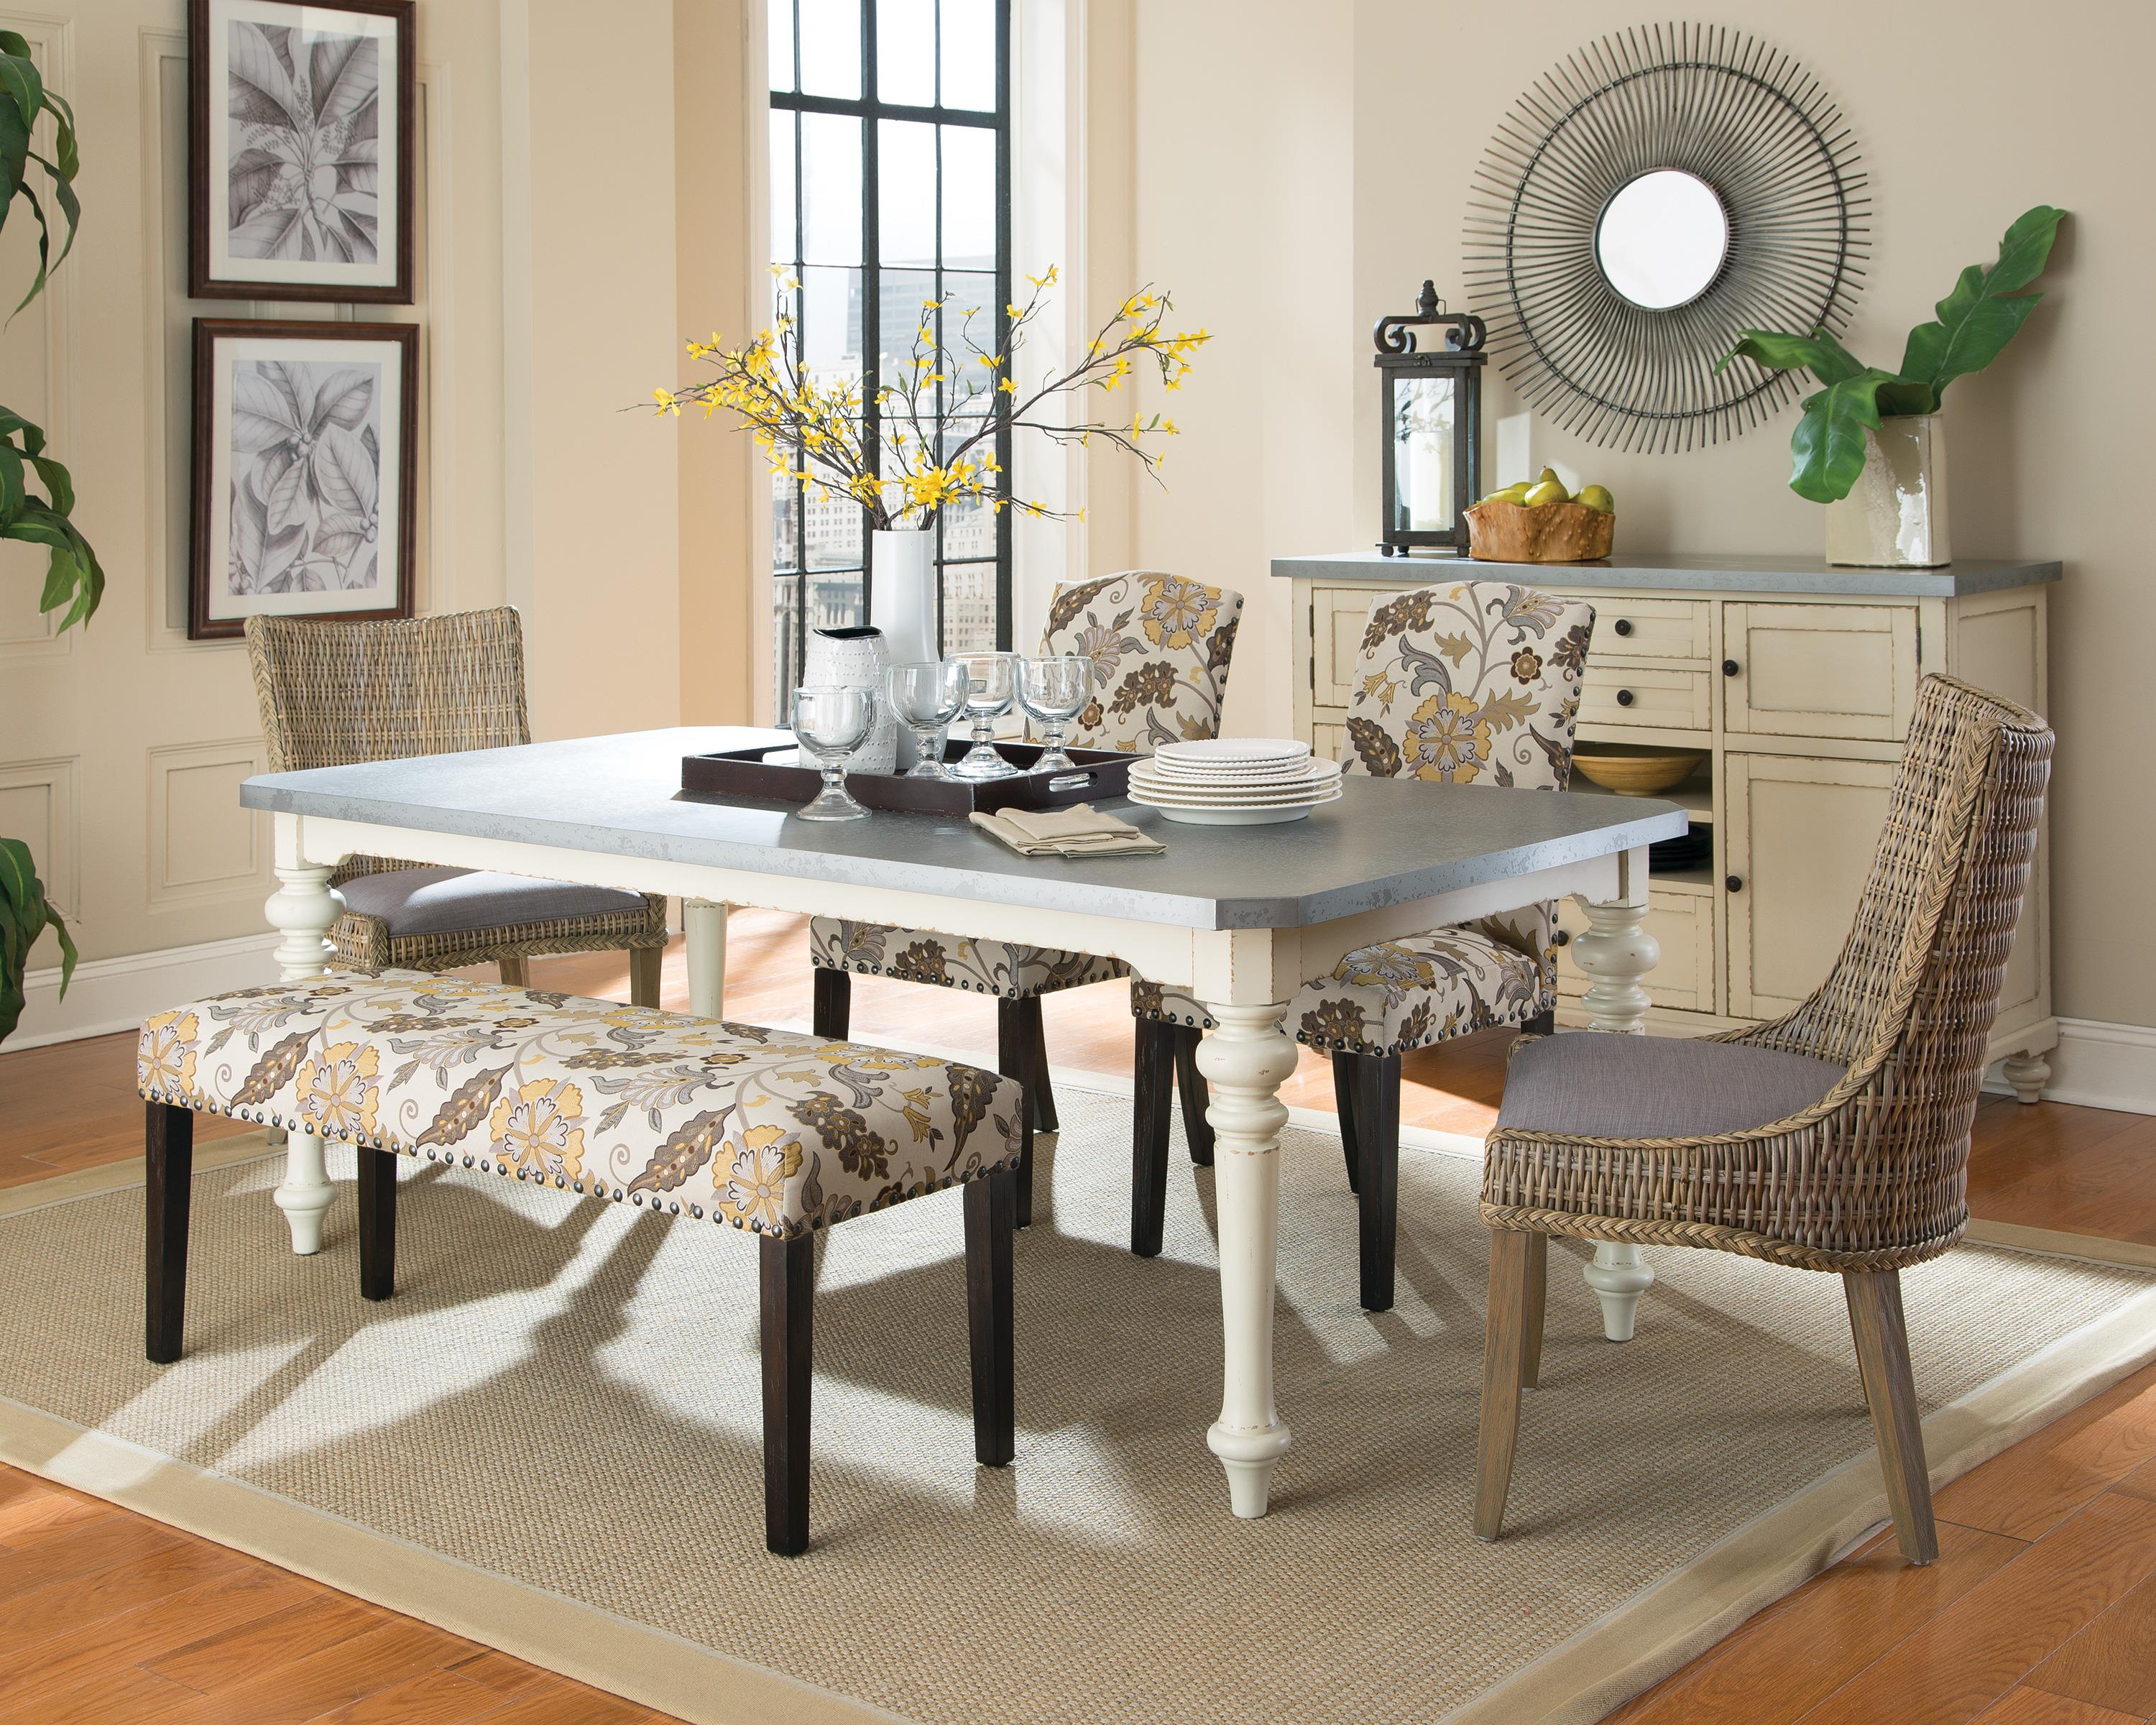 Dining Room Set With Upholstered Chairs And Bench